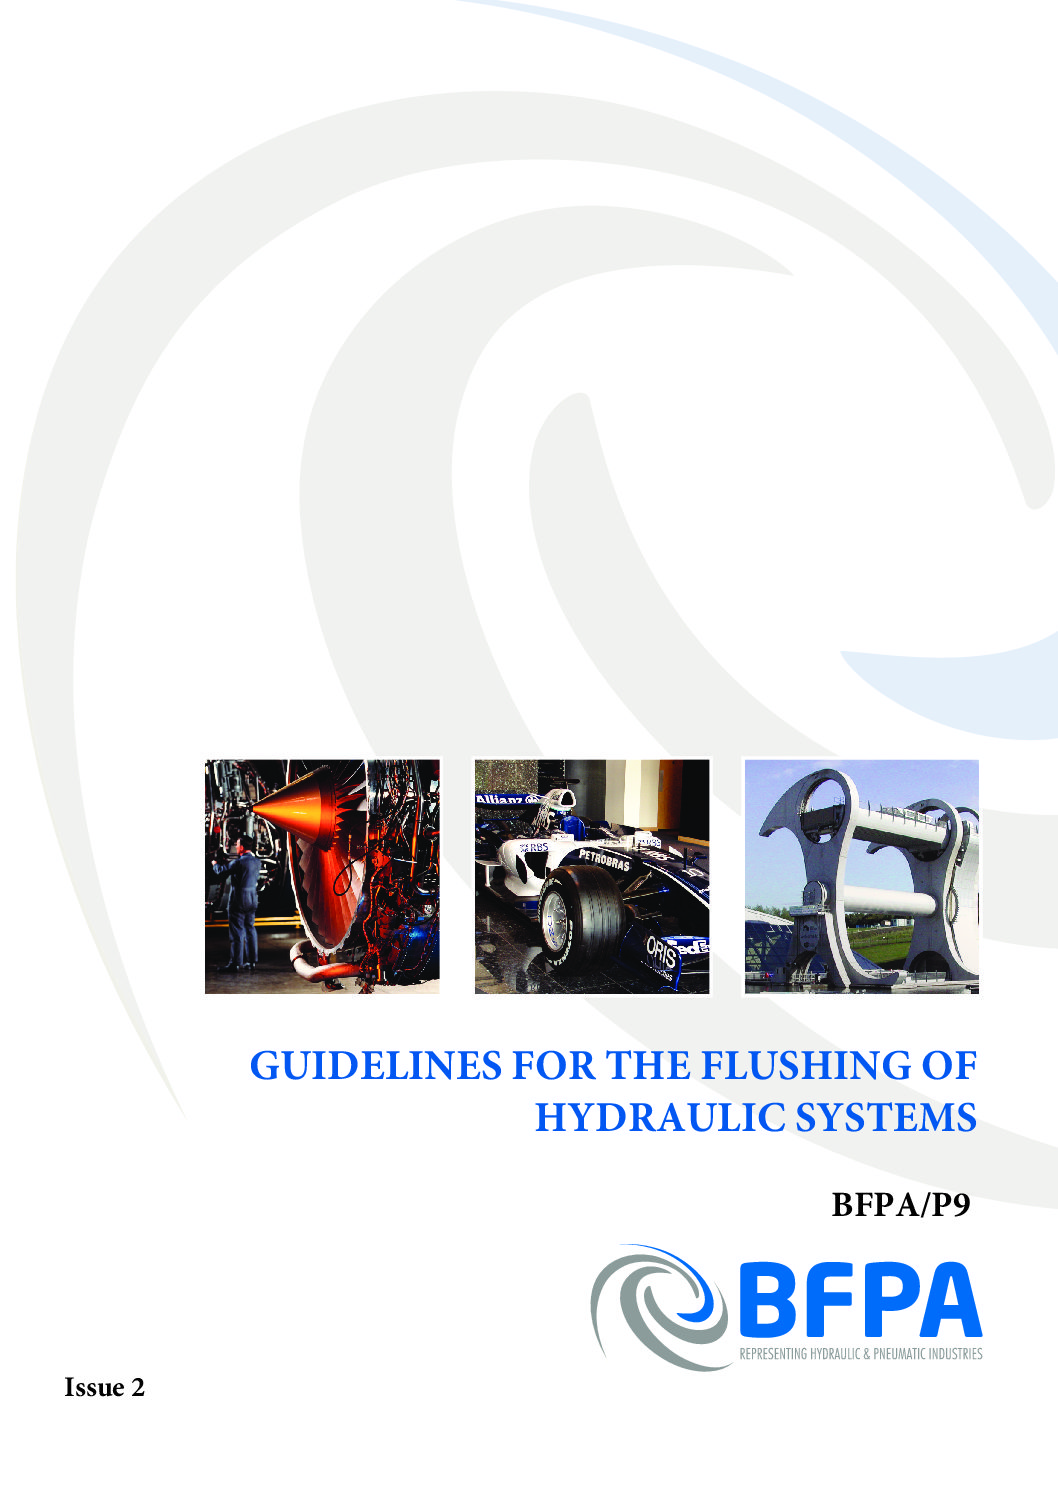 Guidelines for the flushing of hydraulic systems